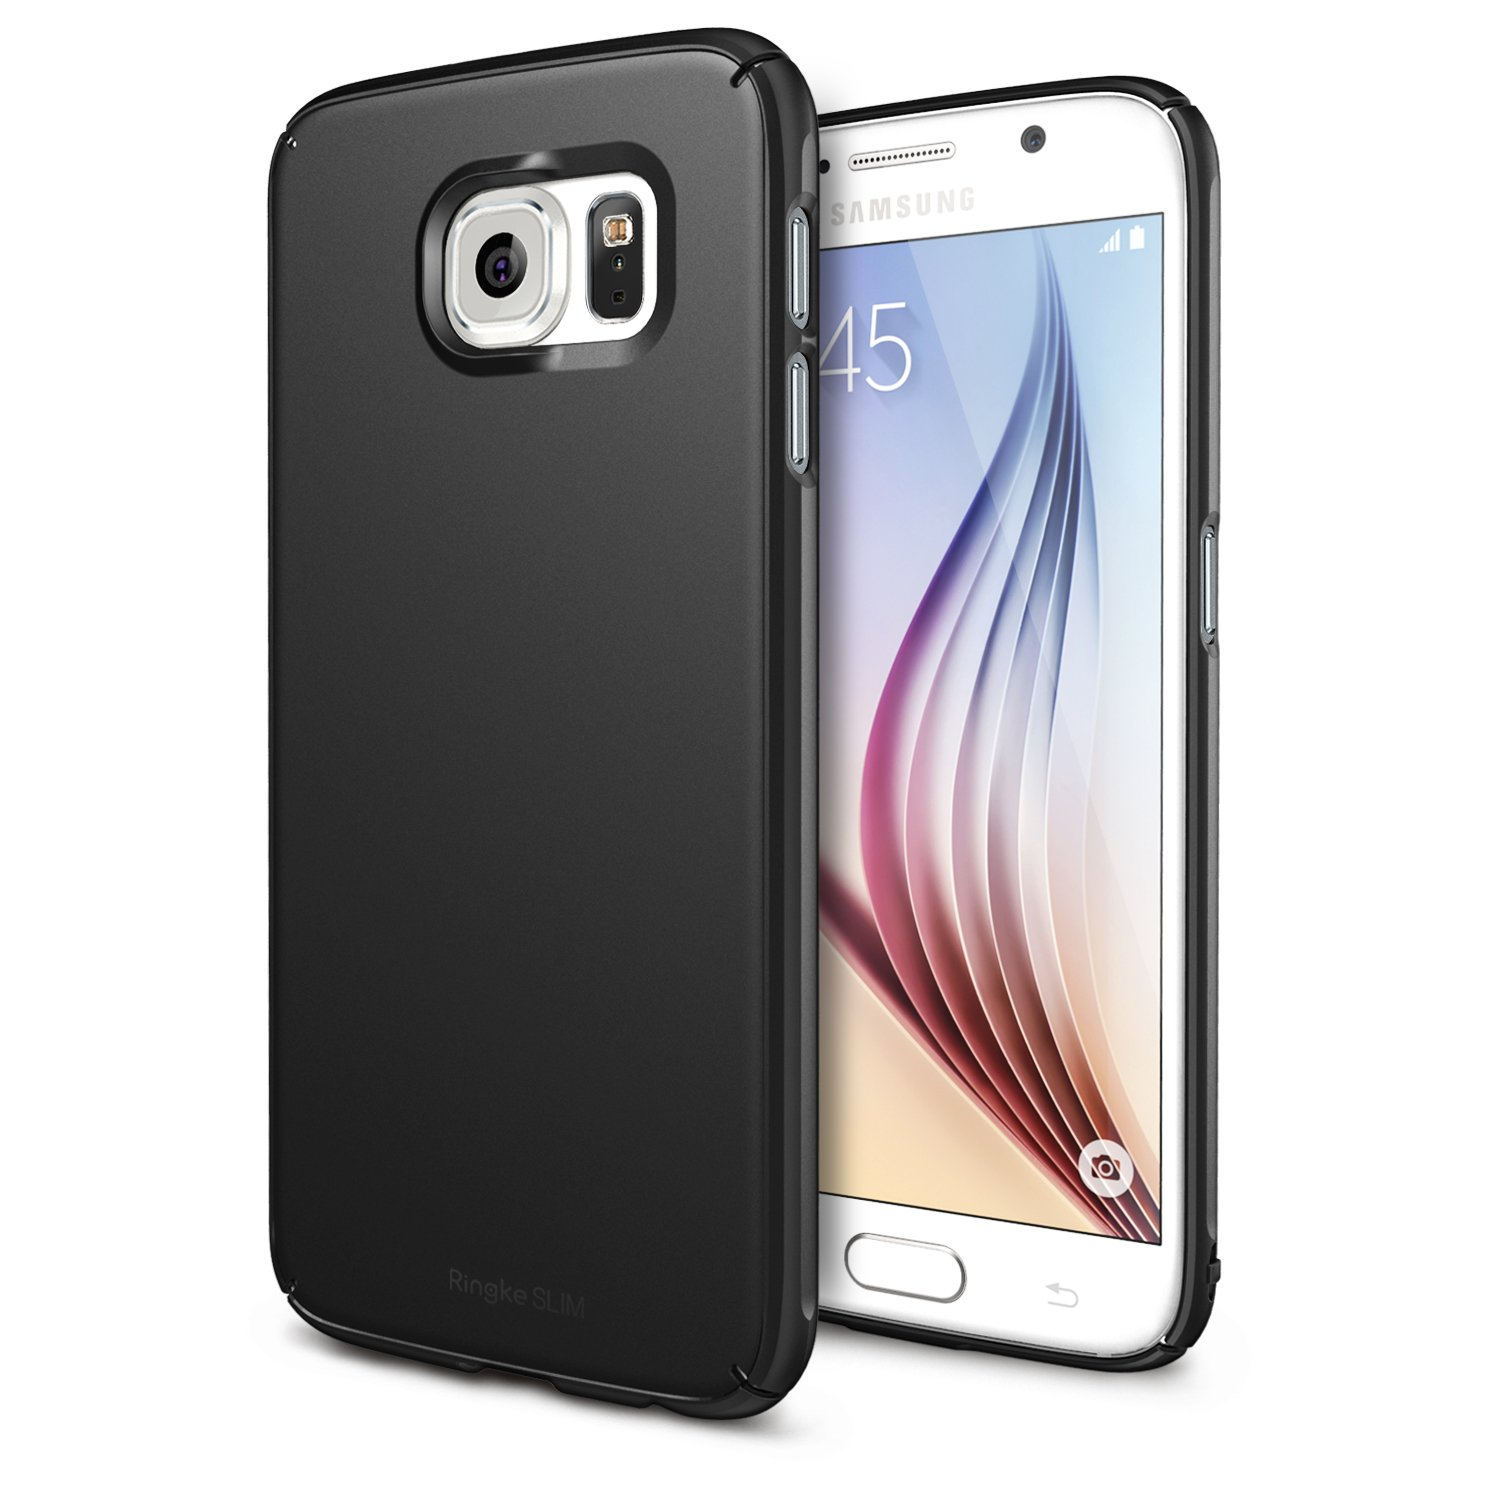 Slimmest Case Available For The S6